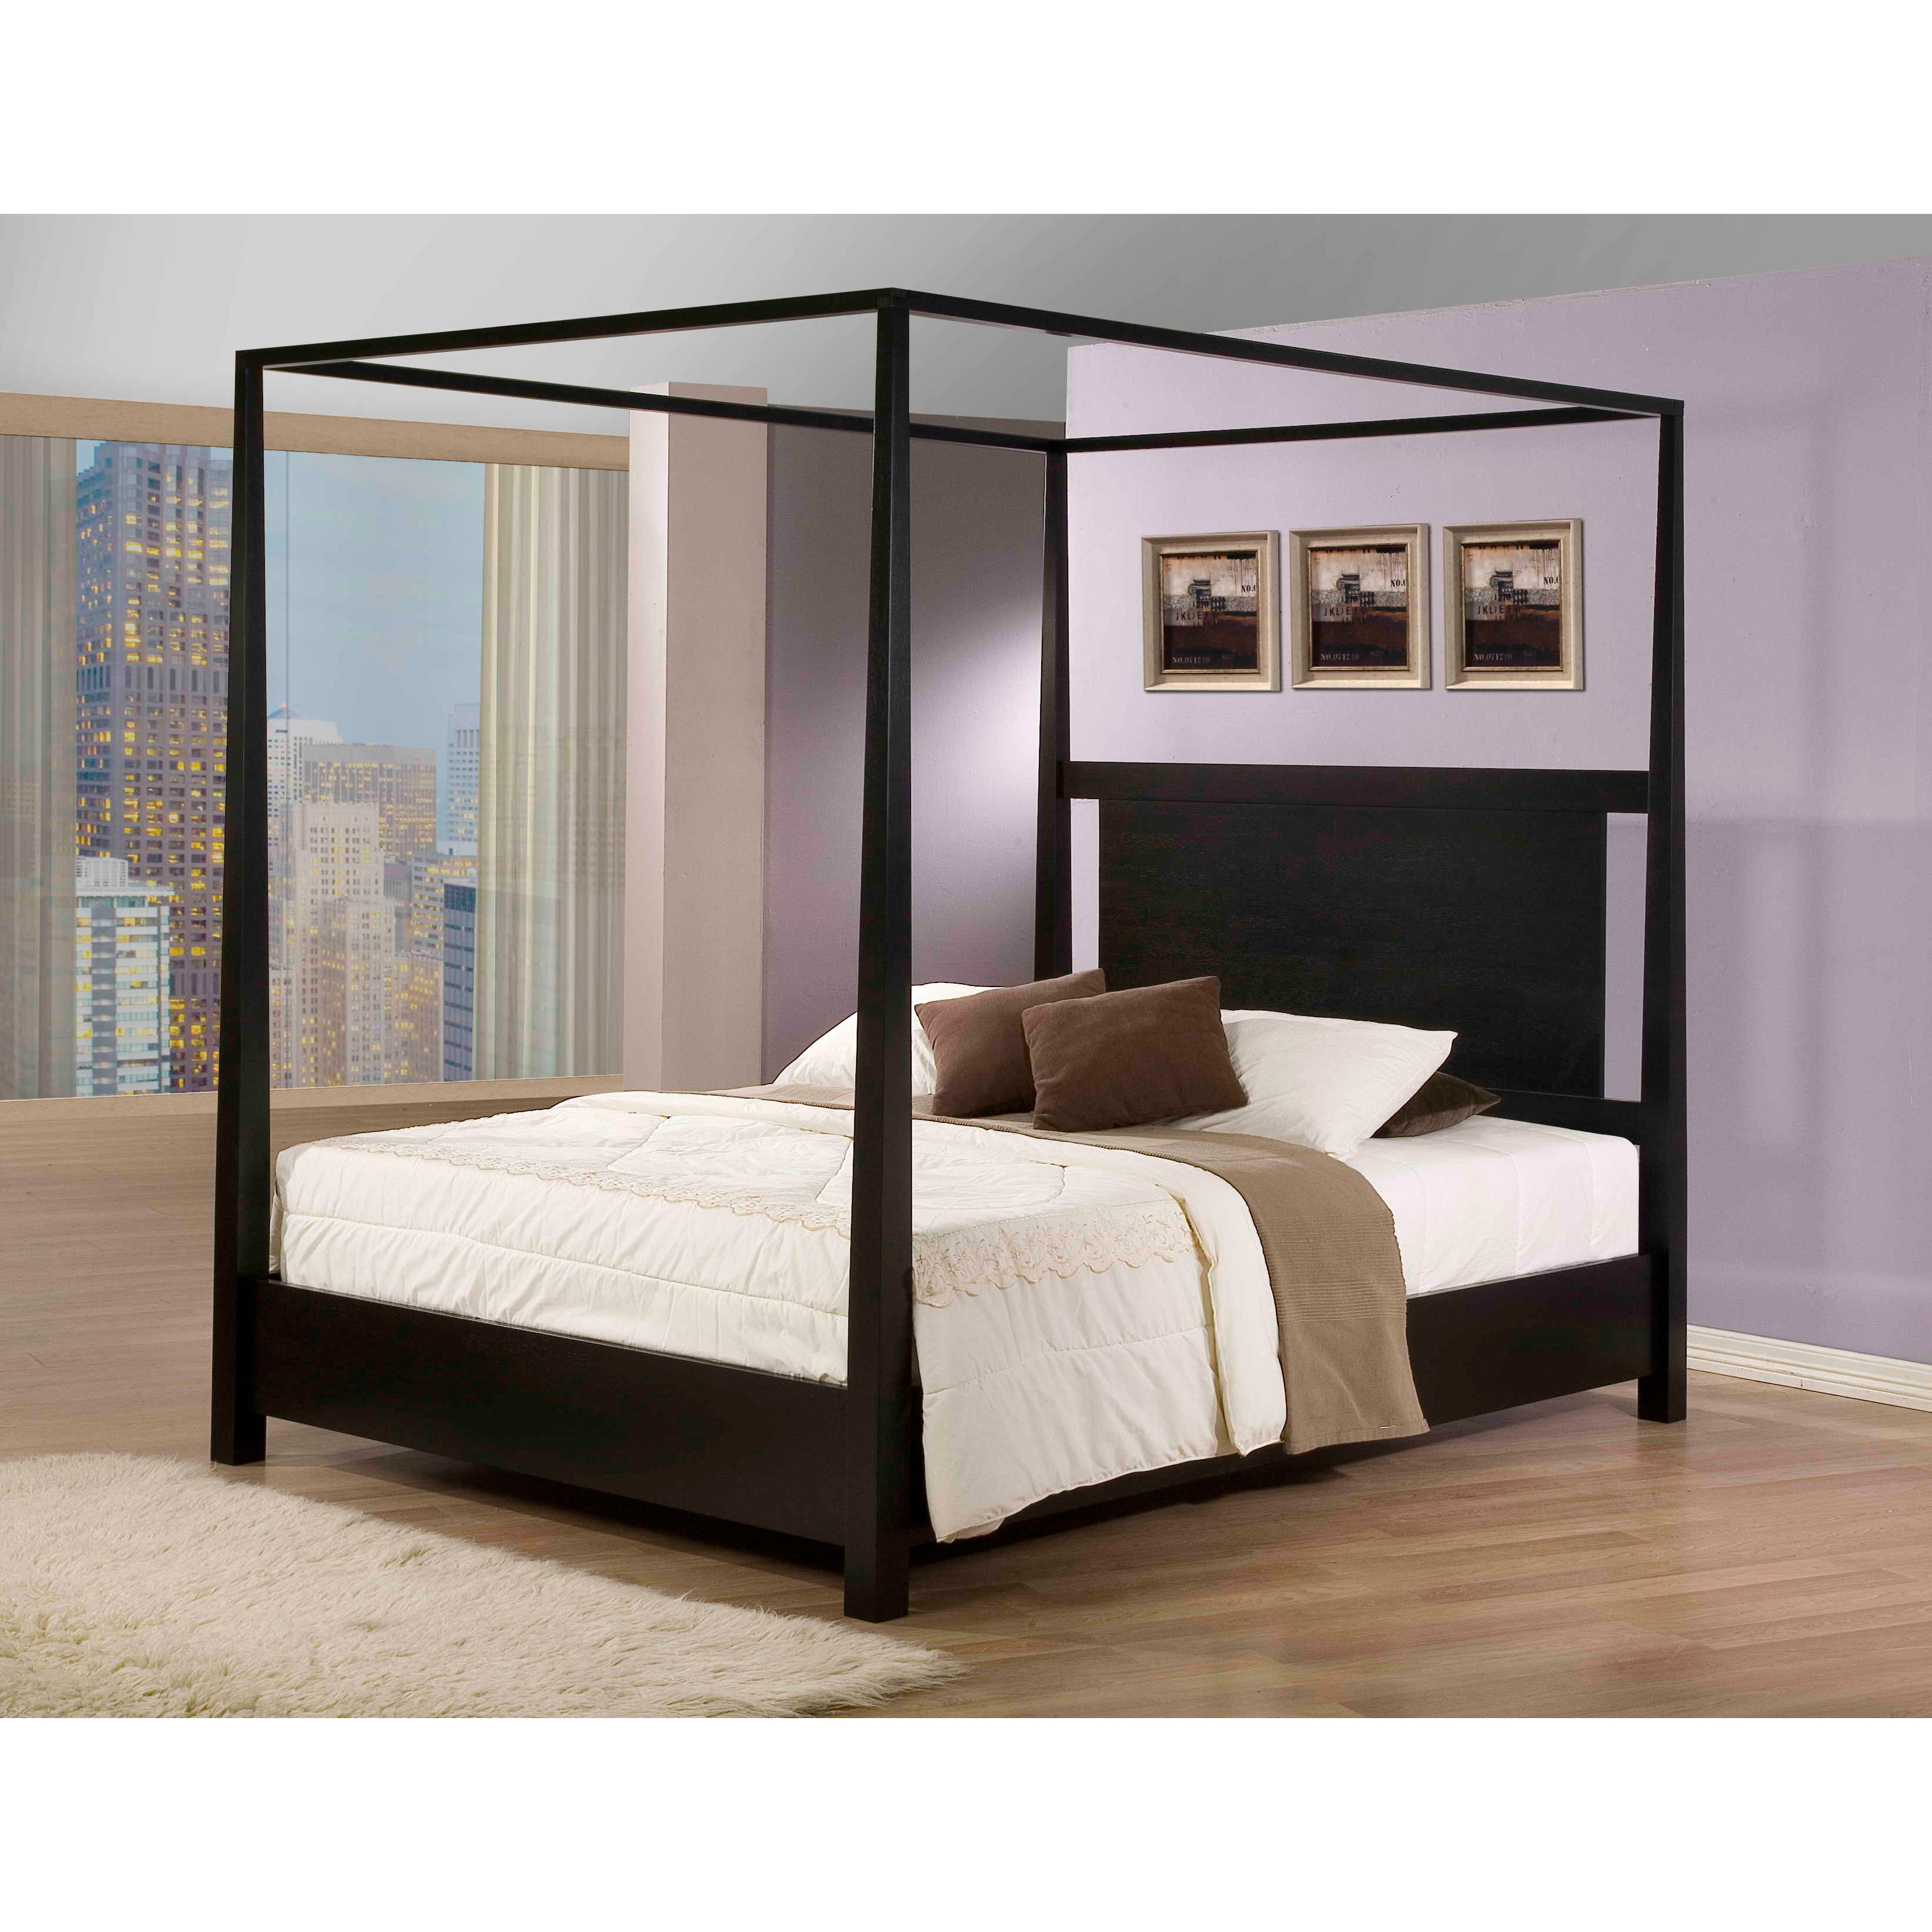 Shop Napa Canopy King Bed